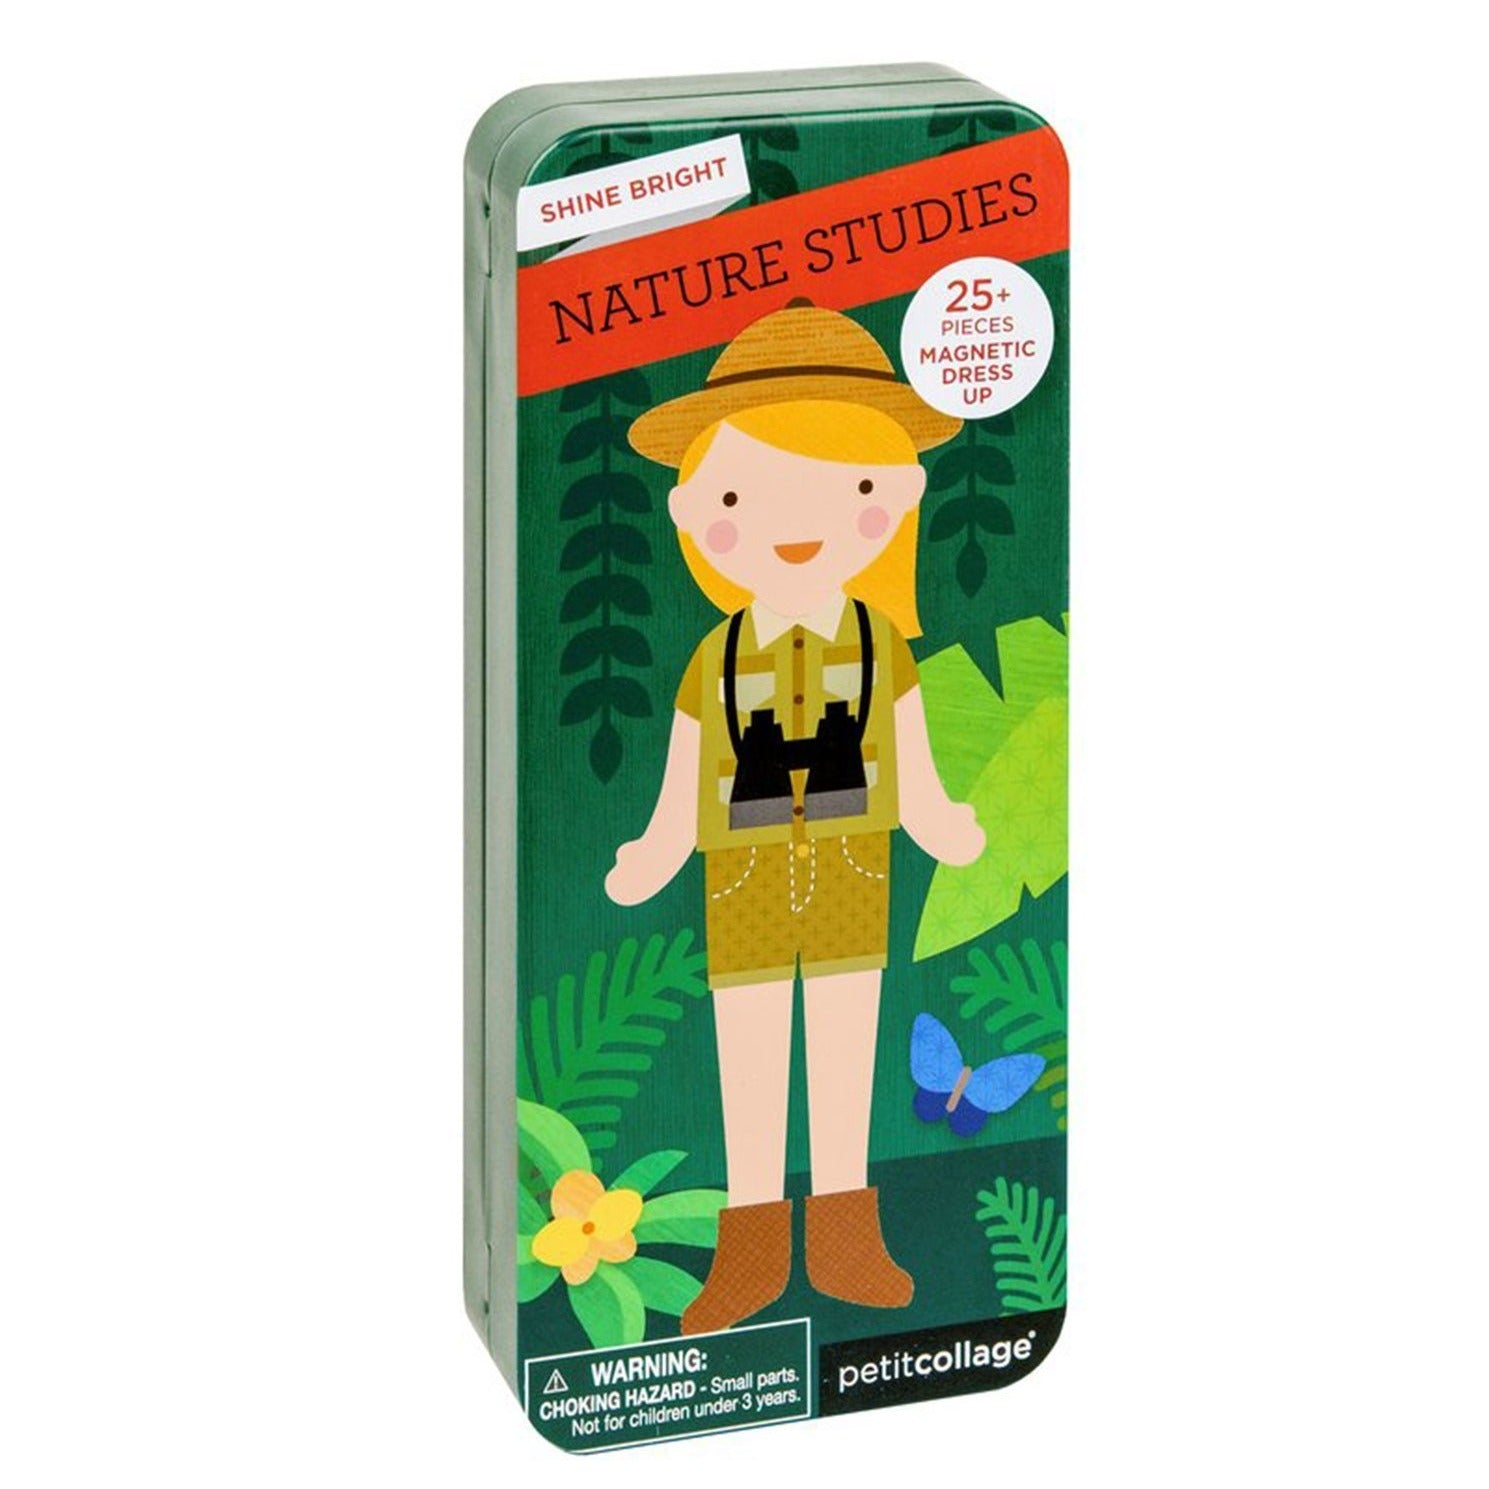 Nature Studies - Magnetic Dress Up, closed tin